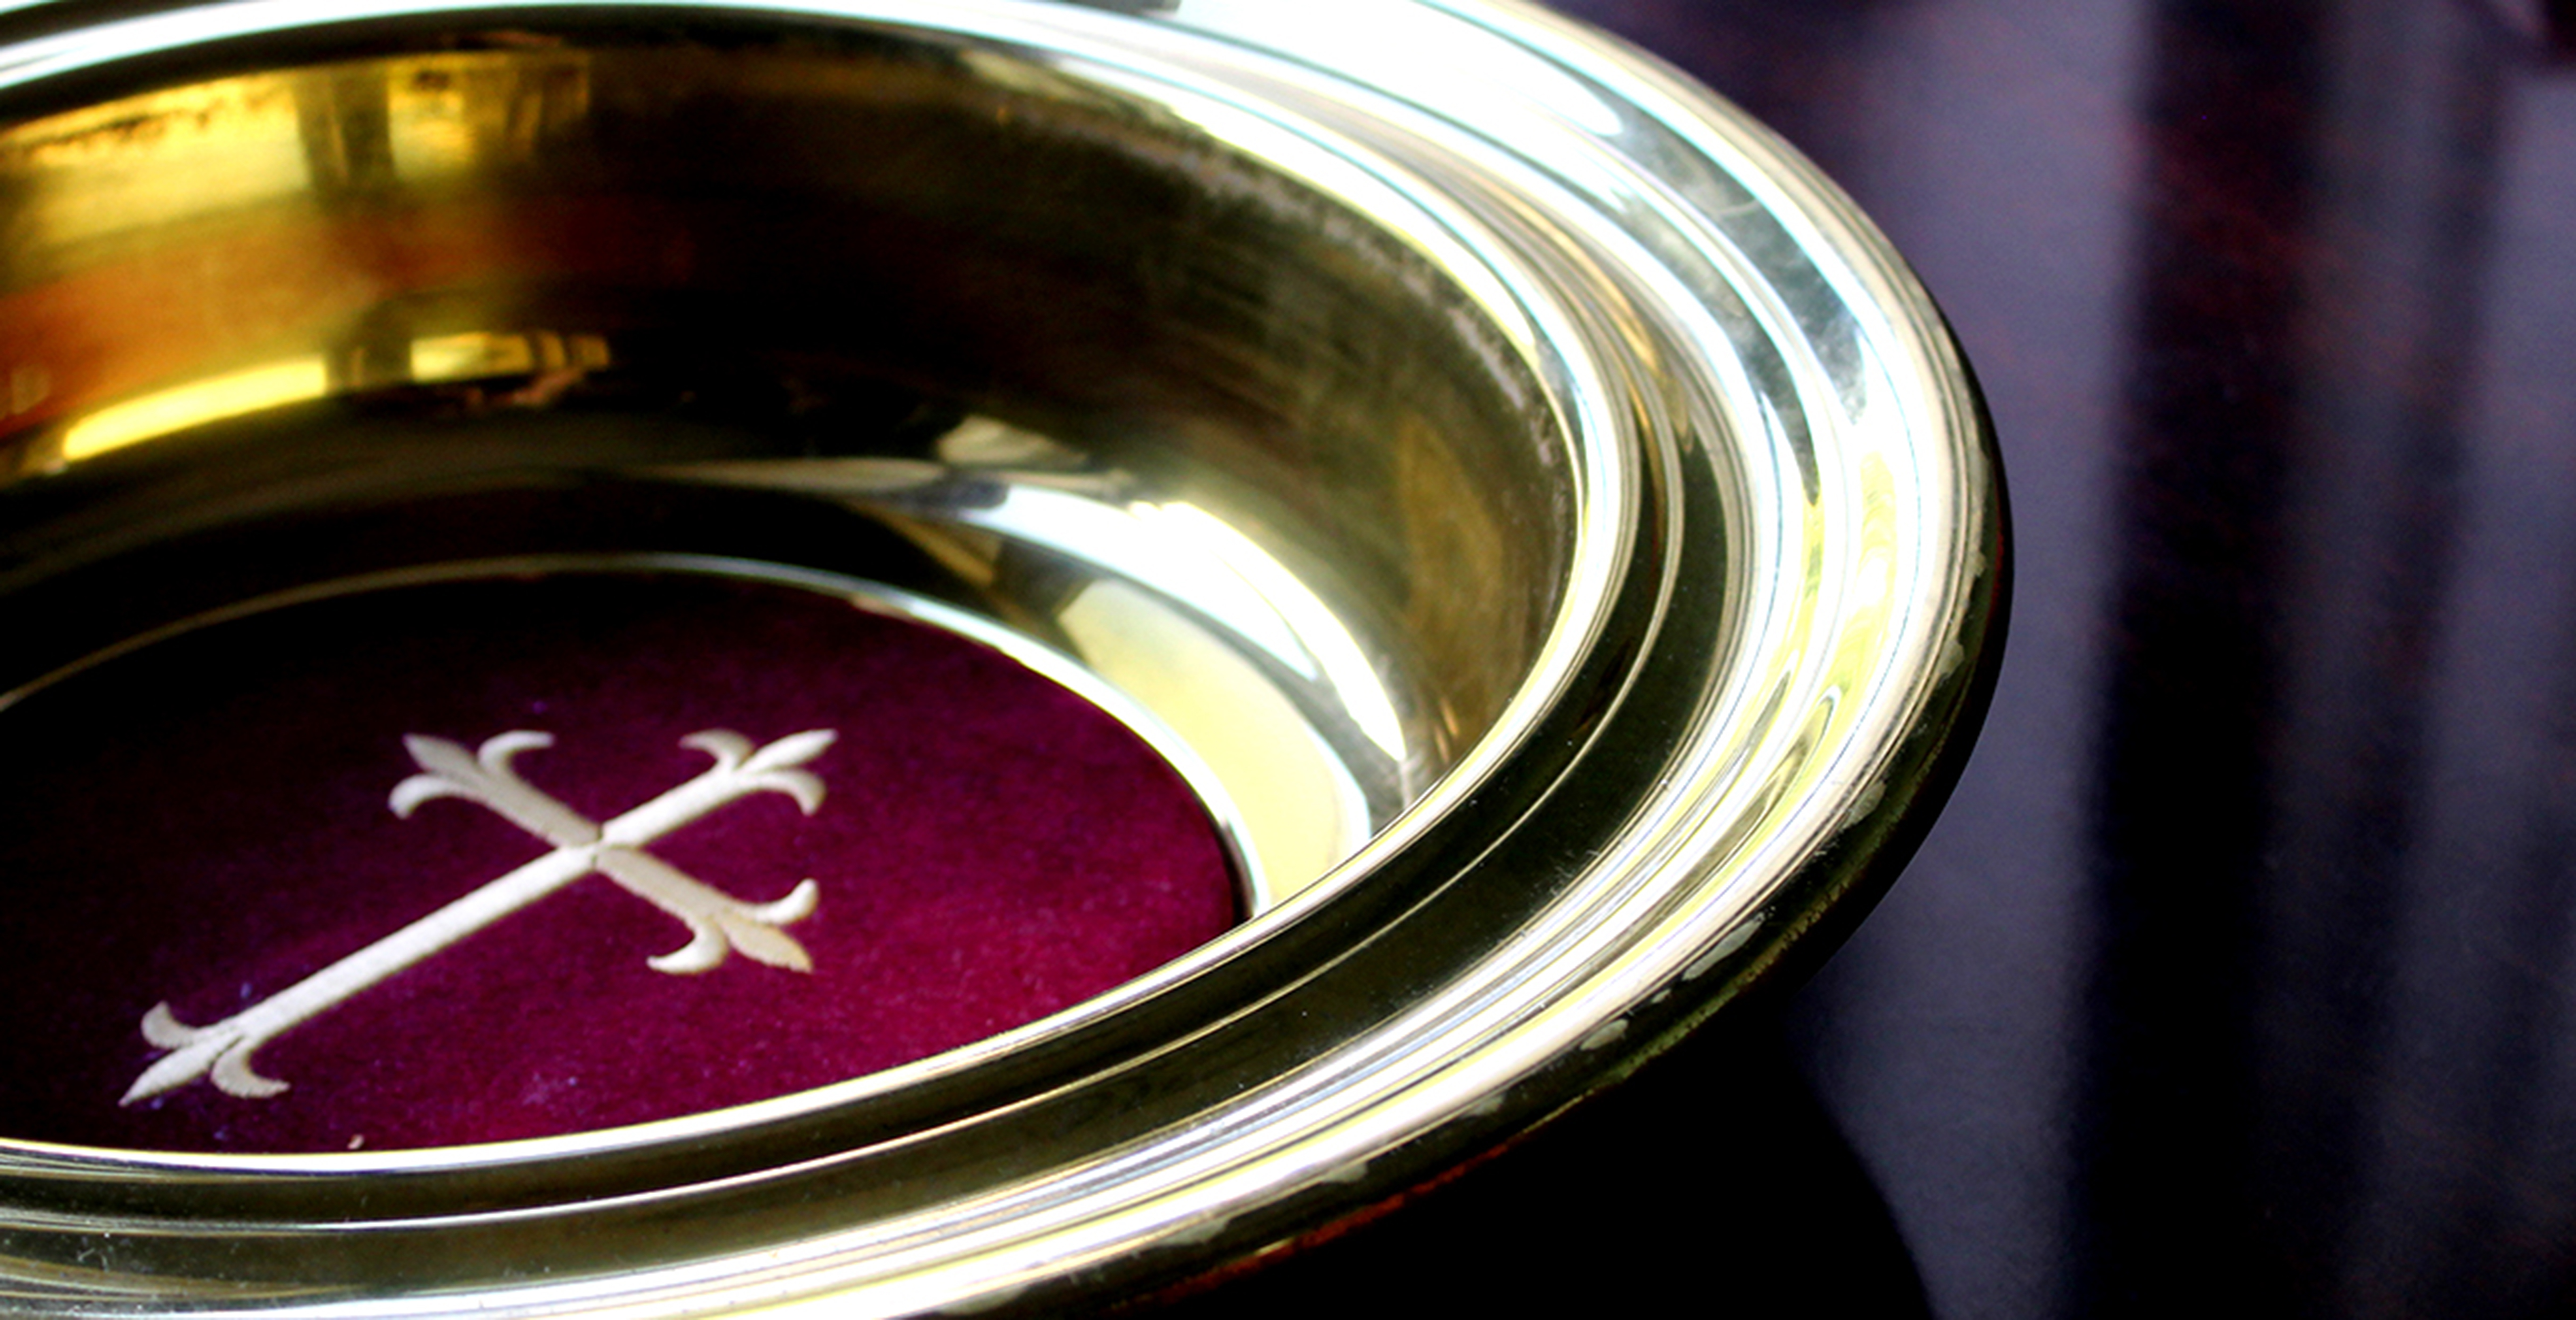 Offering plate images. A photo illustration by Kathryn Price, United Methodist Communications.